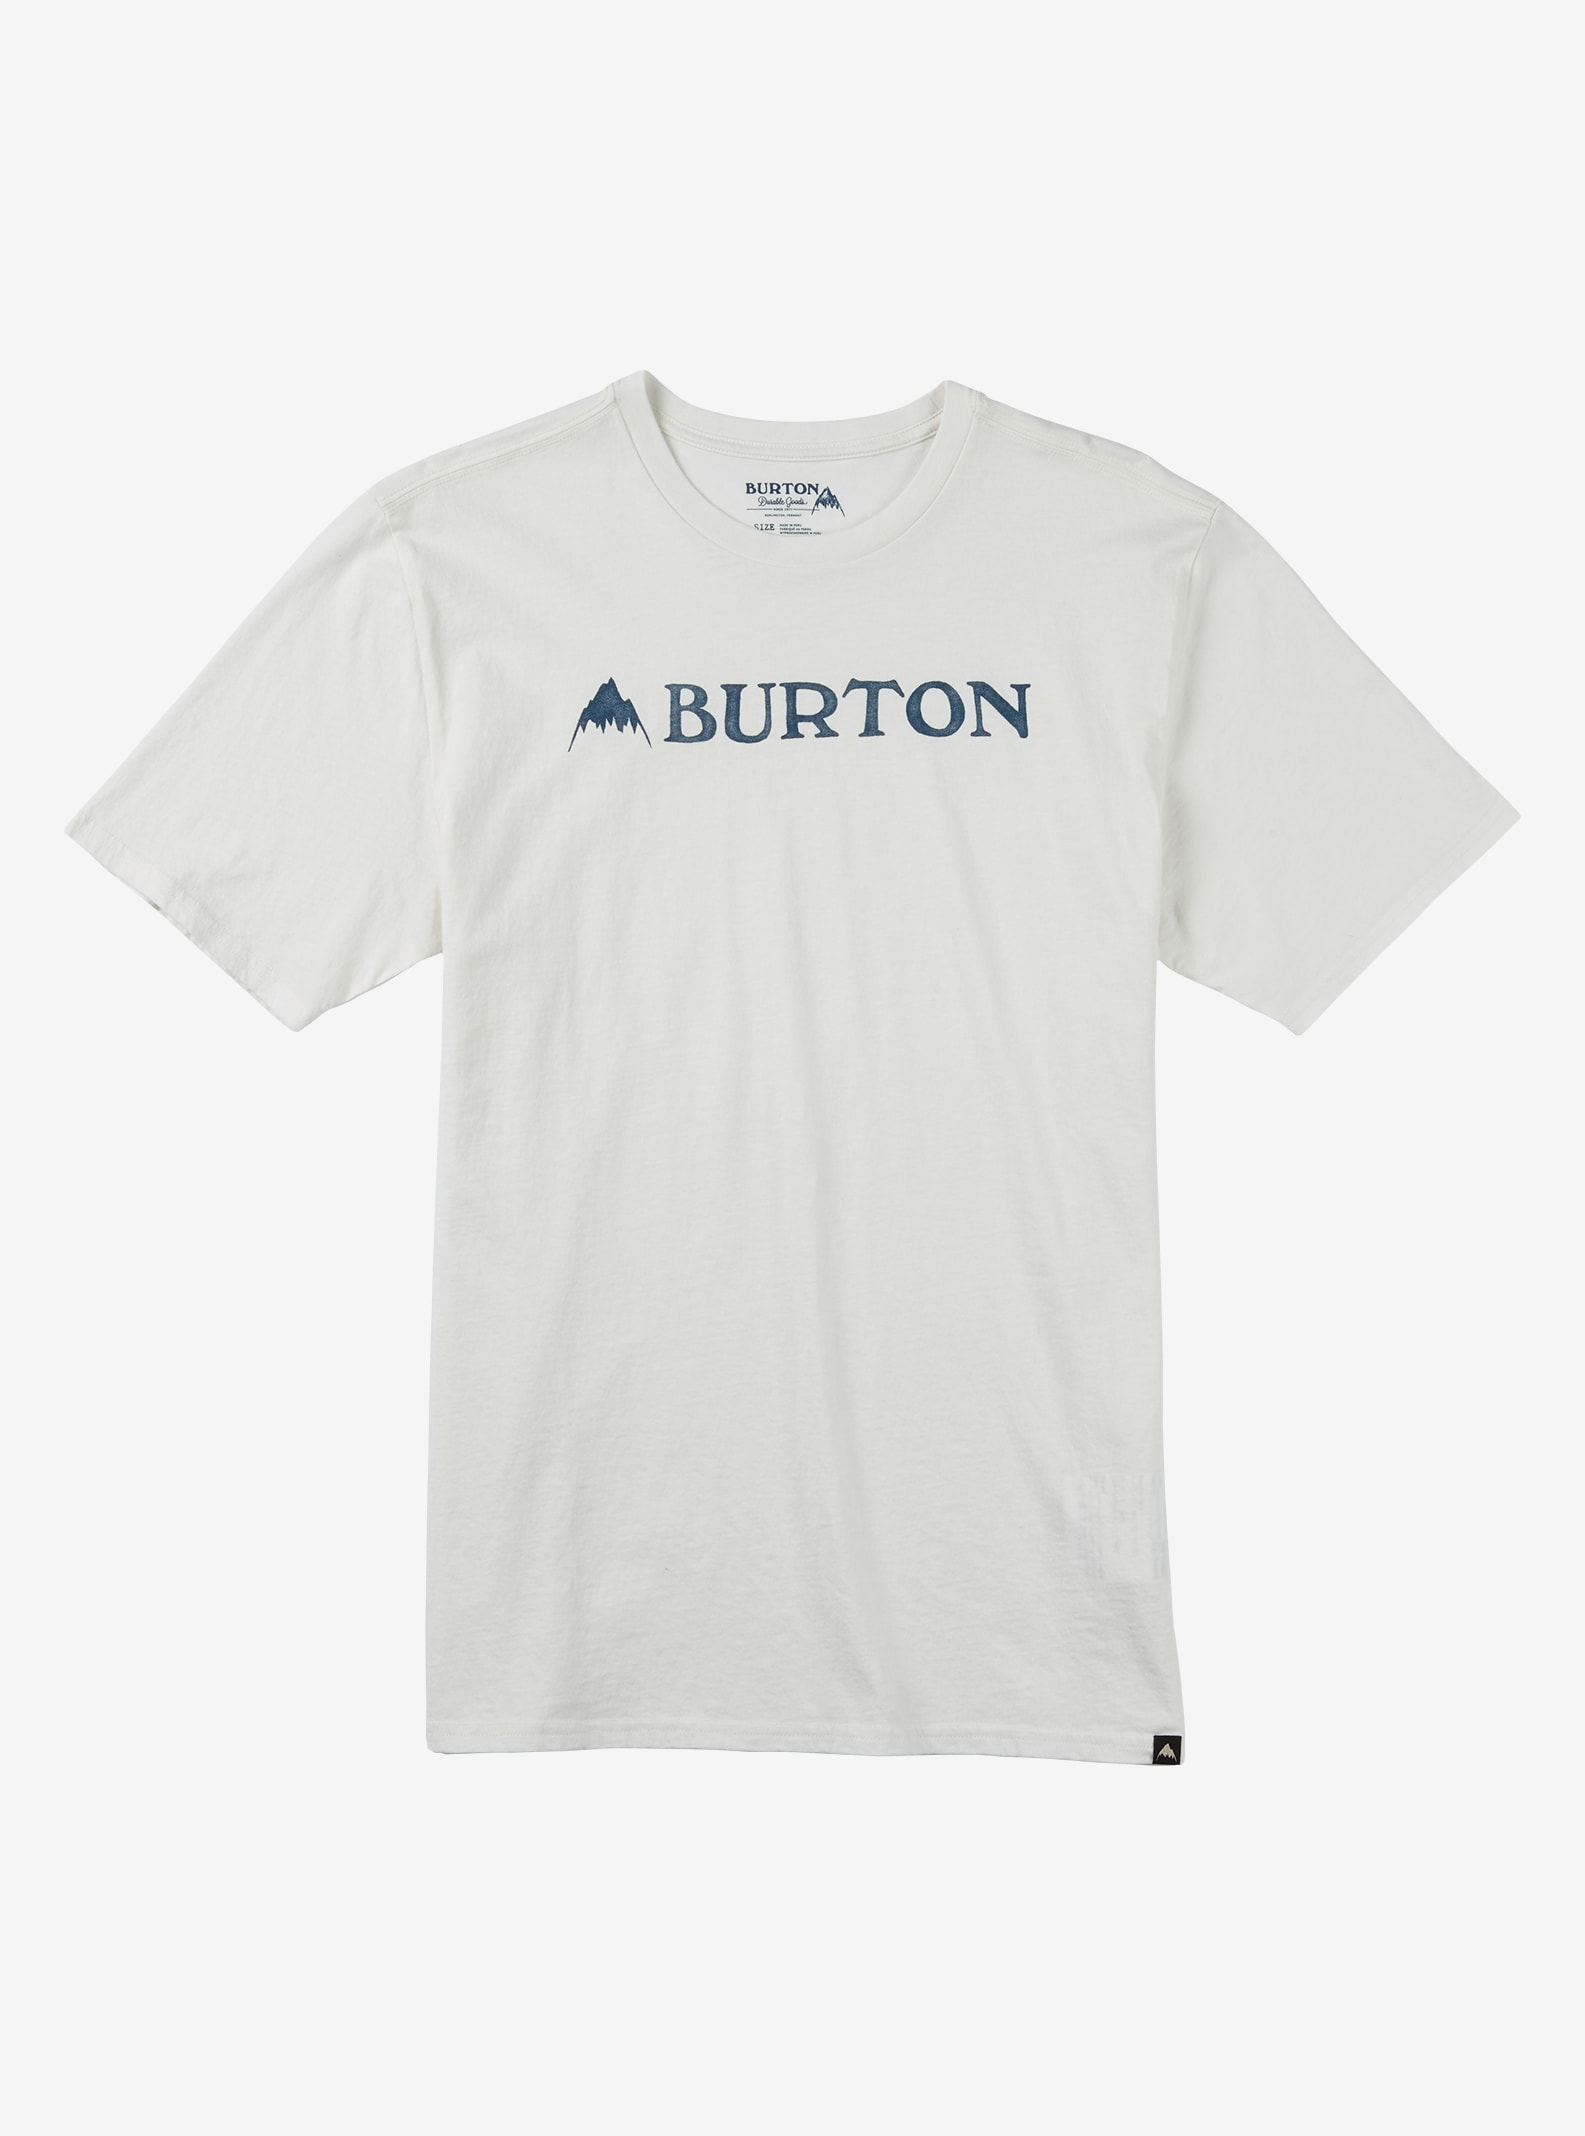 Burton MTN Horizontal Short Sleeve T Shirt shown in Stout White